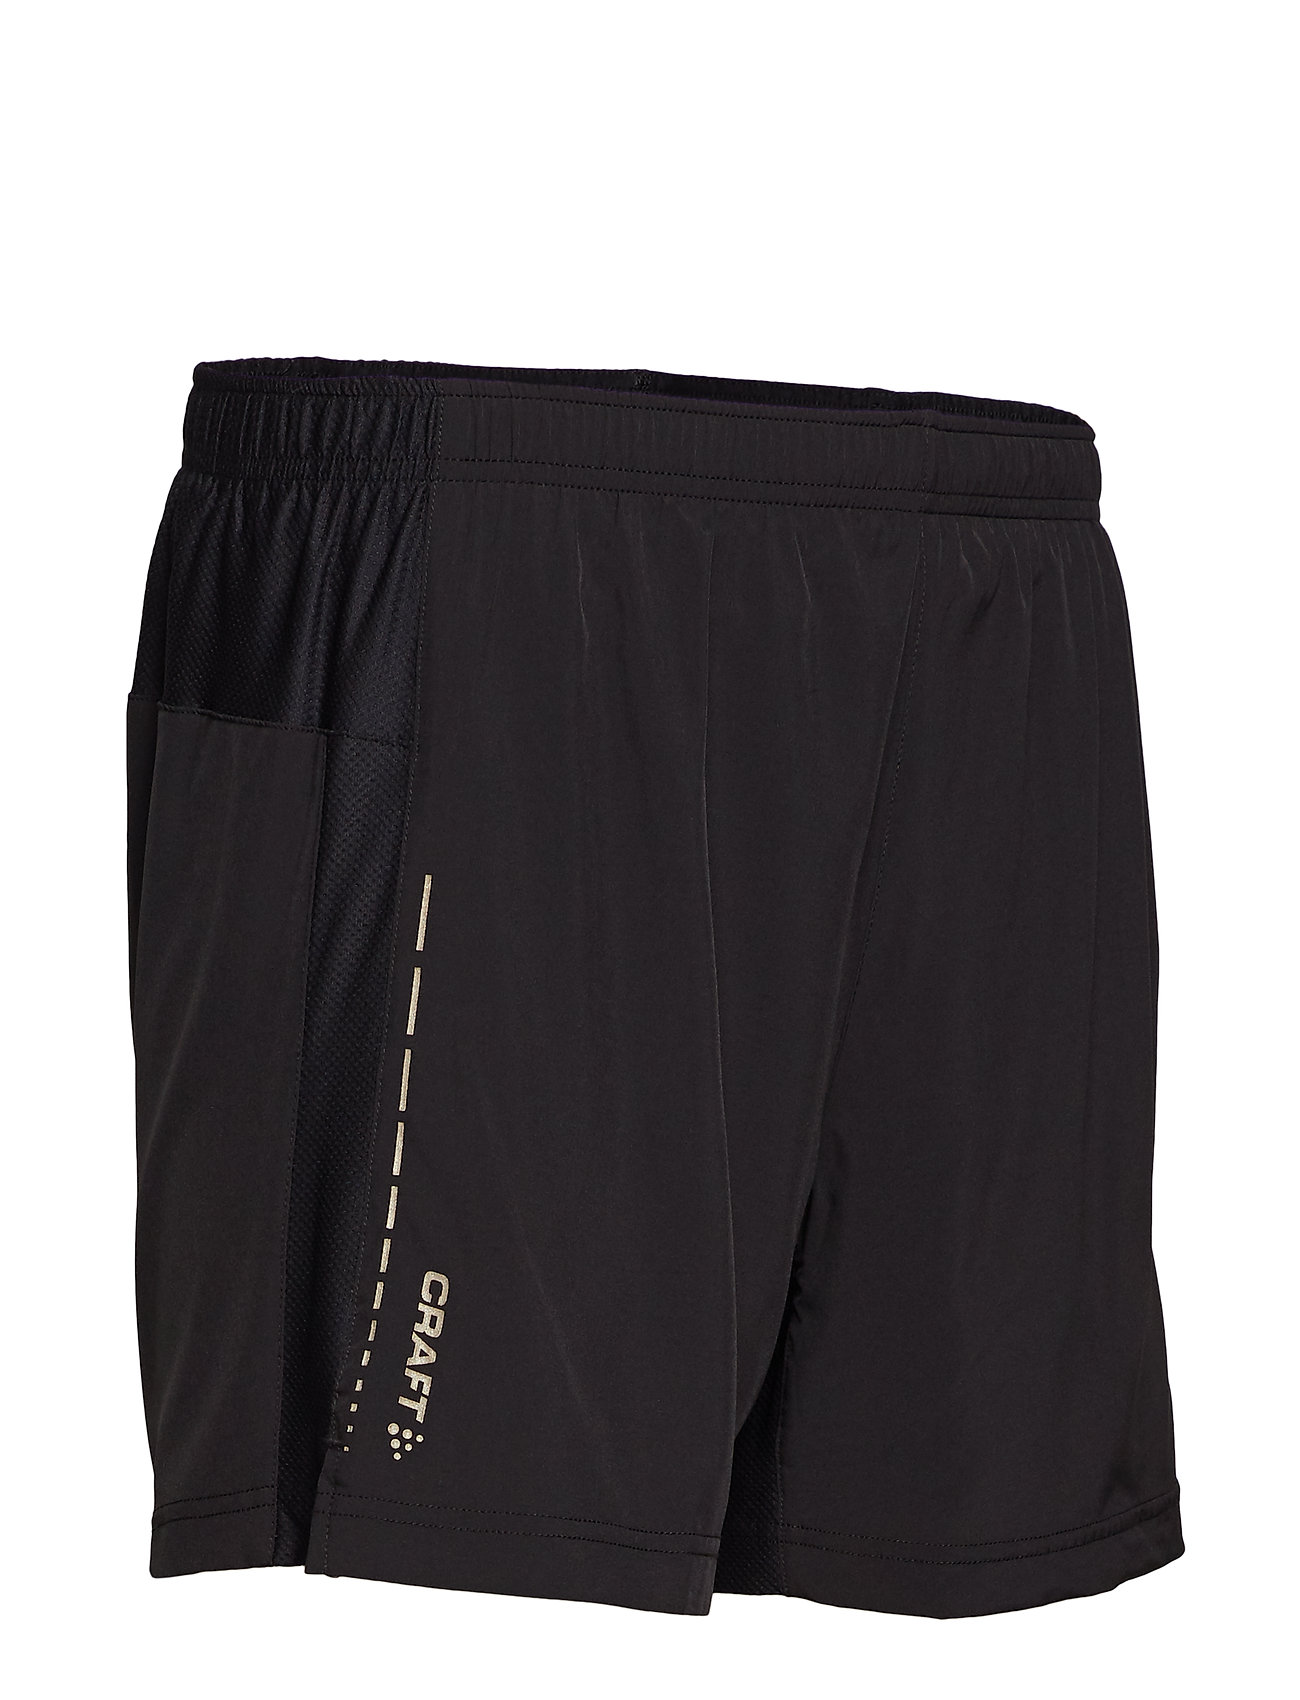 Shorts in 2 1 Essential MblackCraft CxBrdeoW